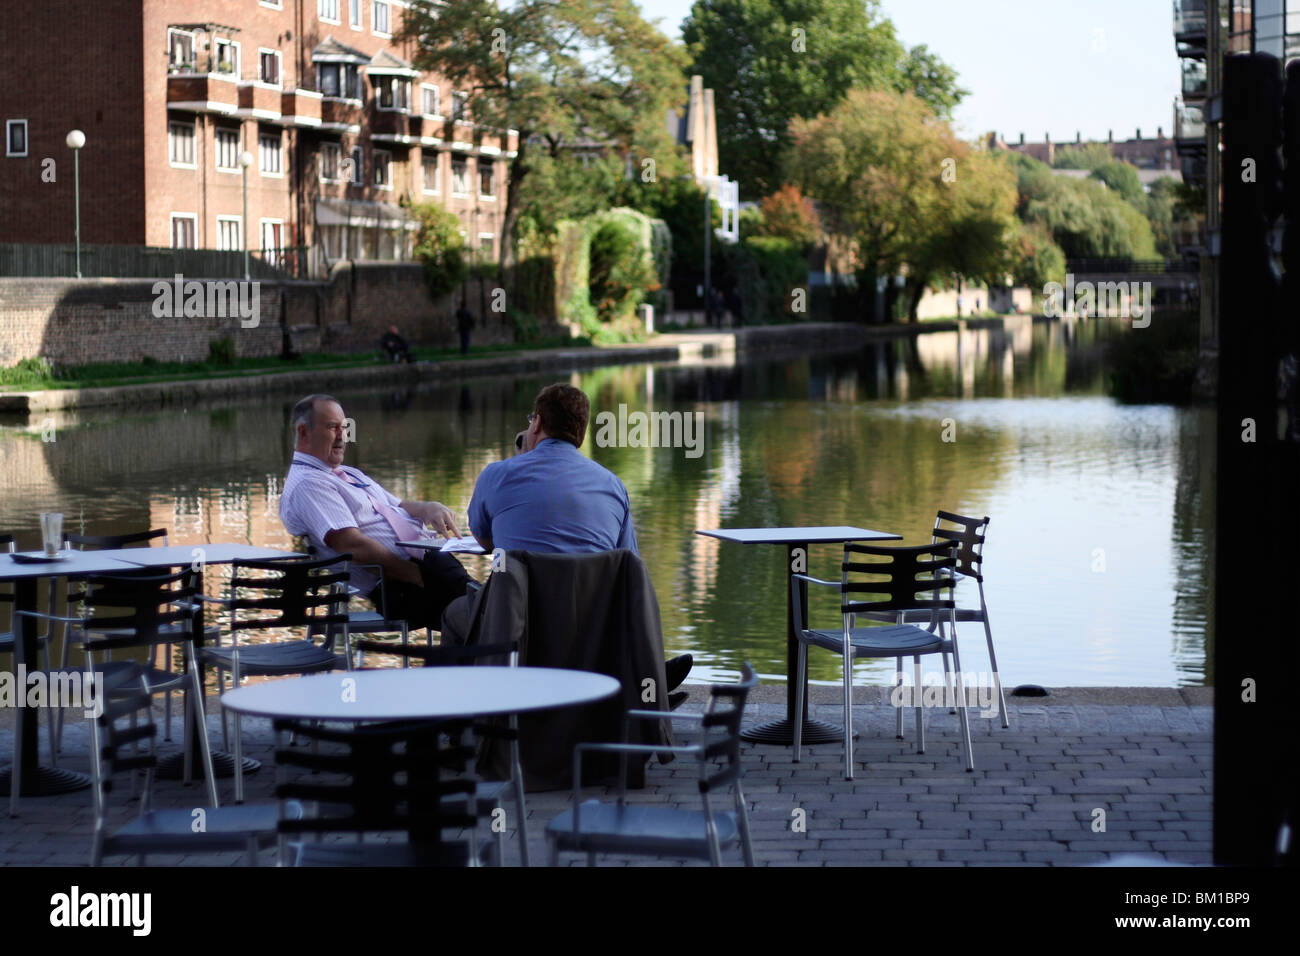 two bussiness men sat having lunch by the river/ canal in london near kings cross and camden. Stock Photo